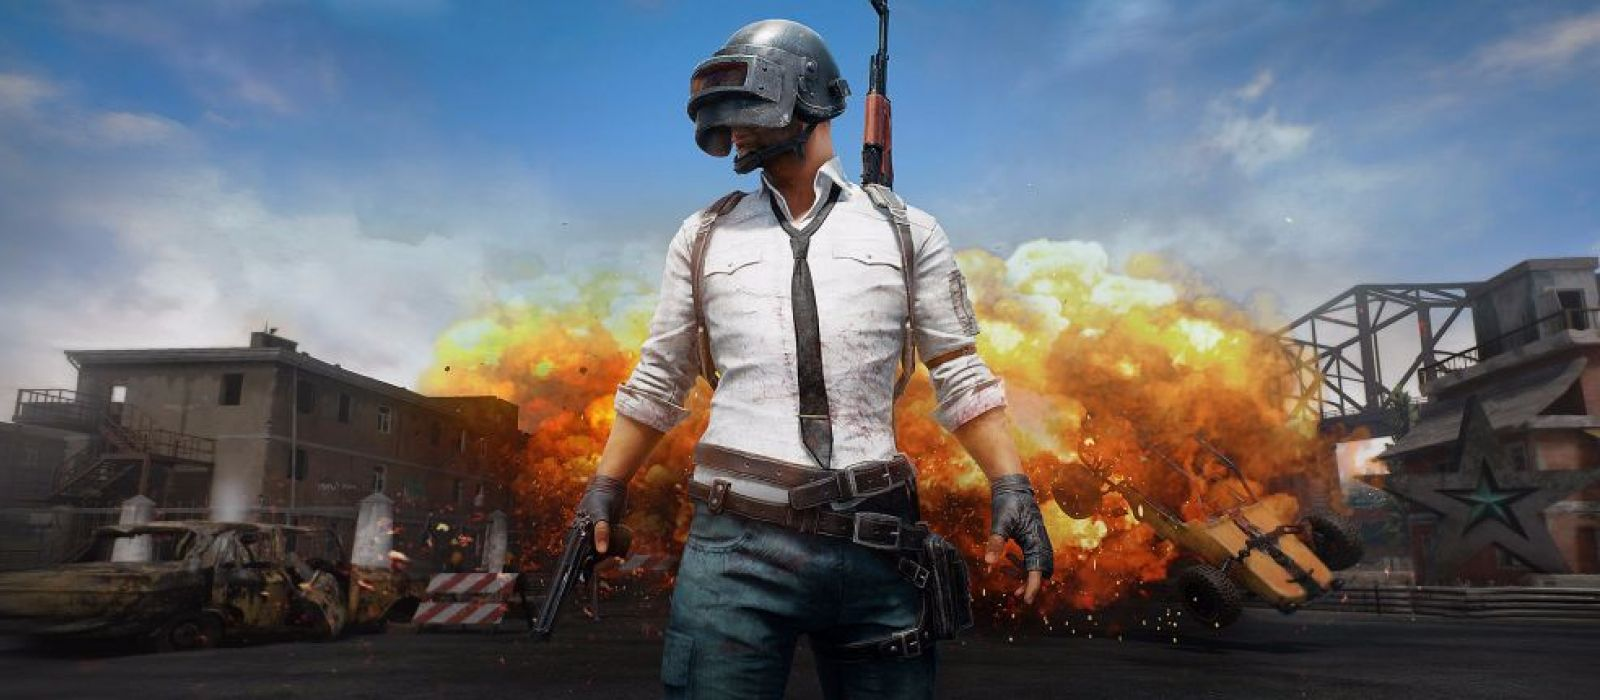 Создатели PlayerUnknown's Battlegrounds обвинили Epic Games в плагиате